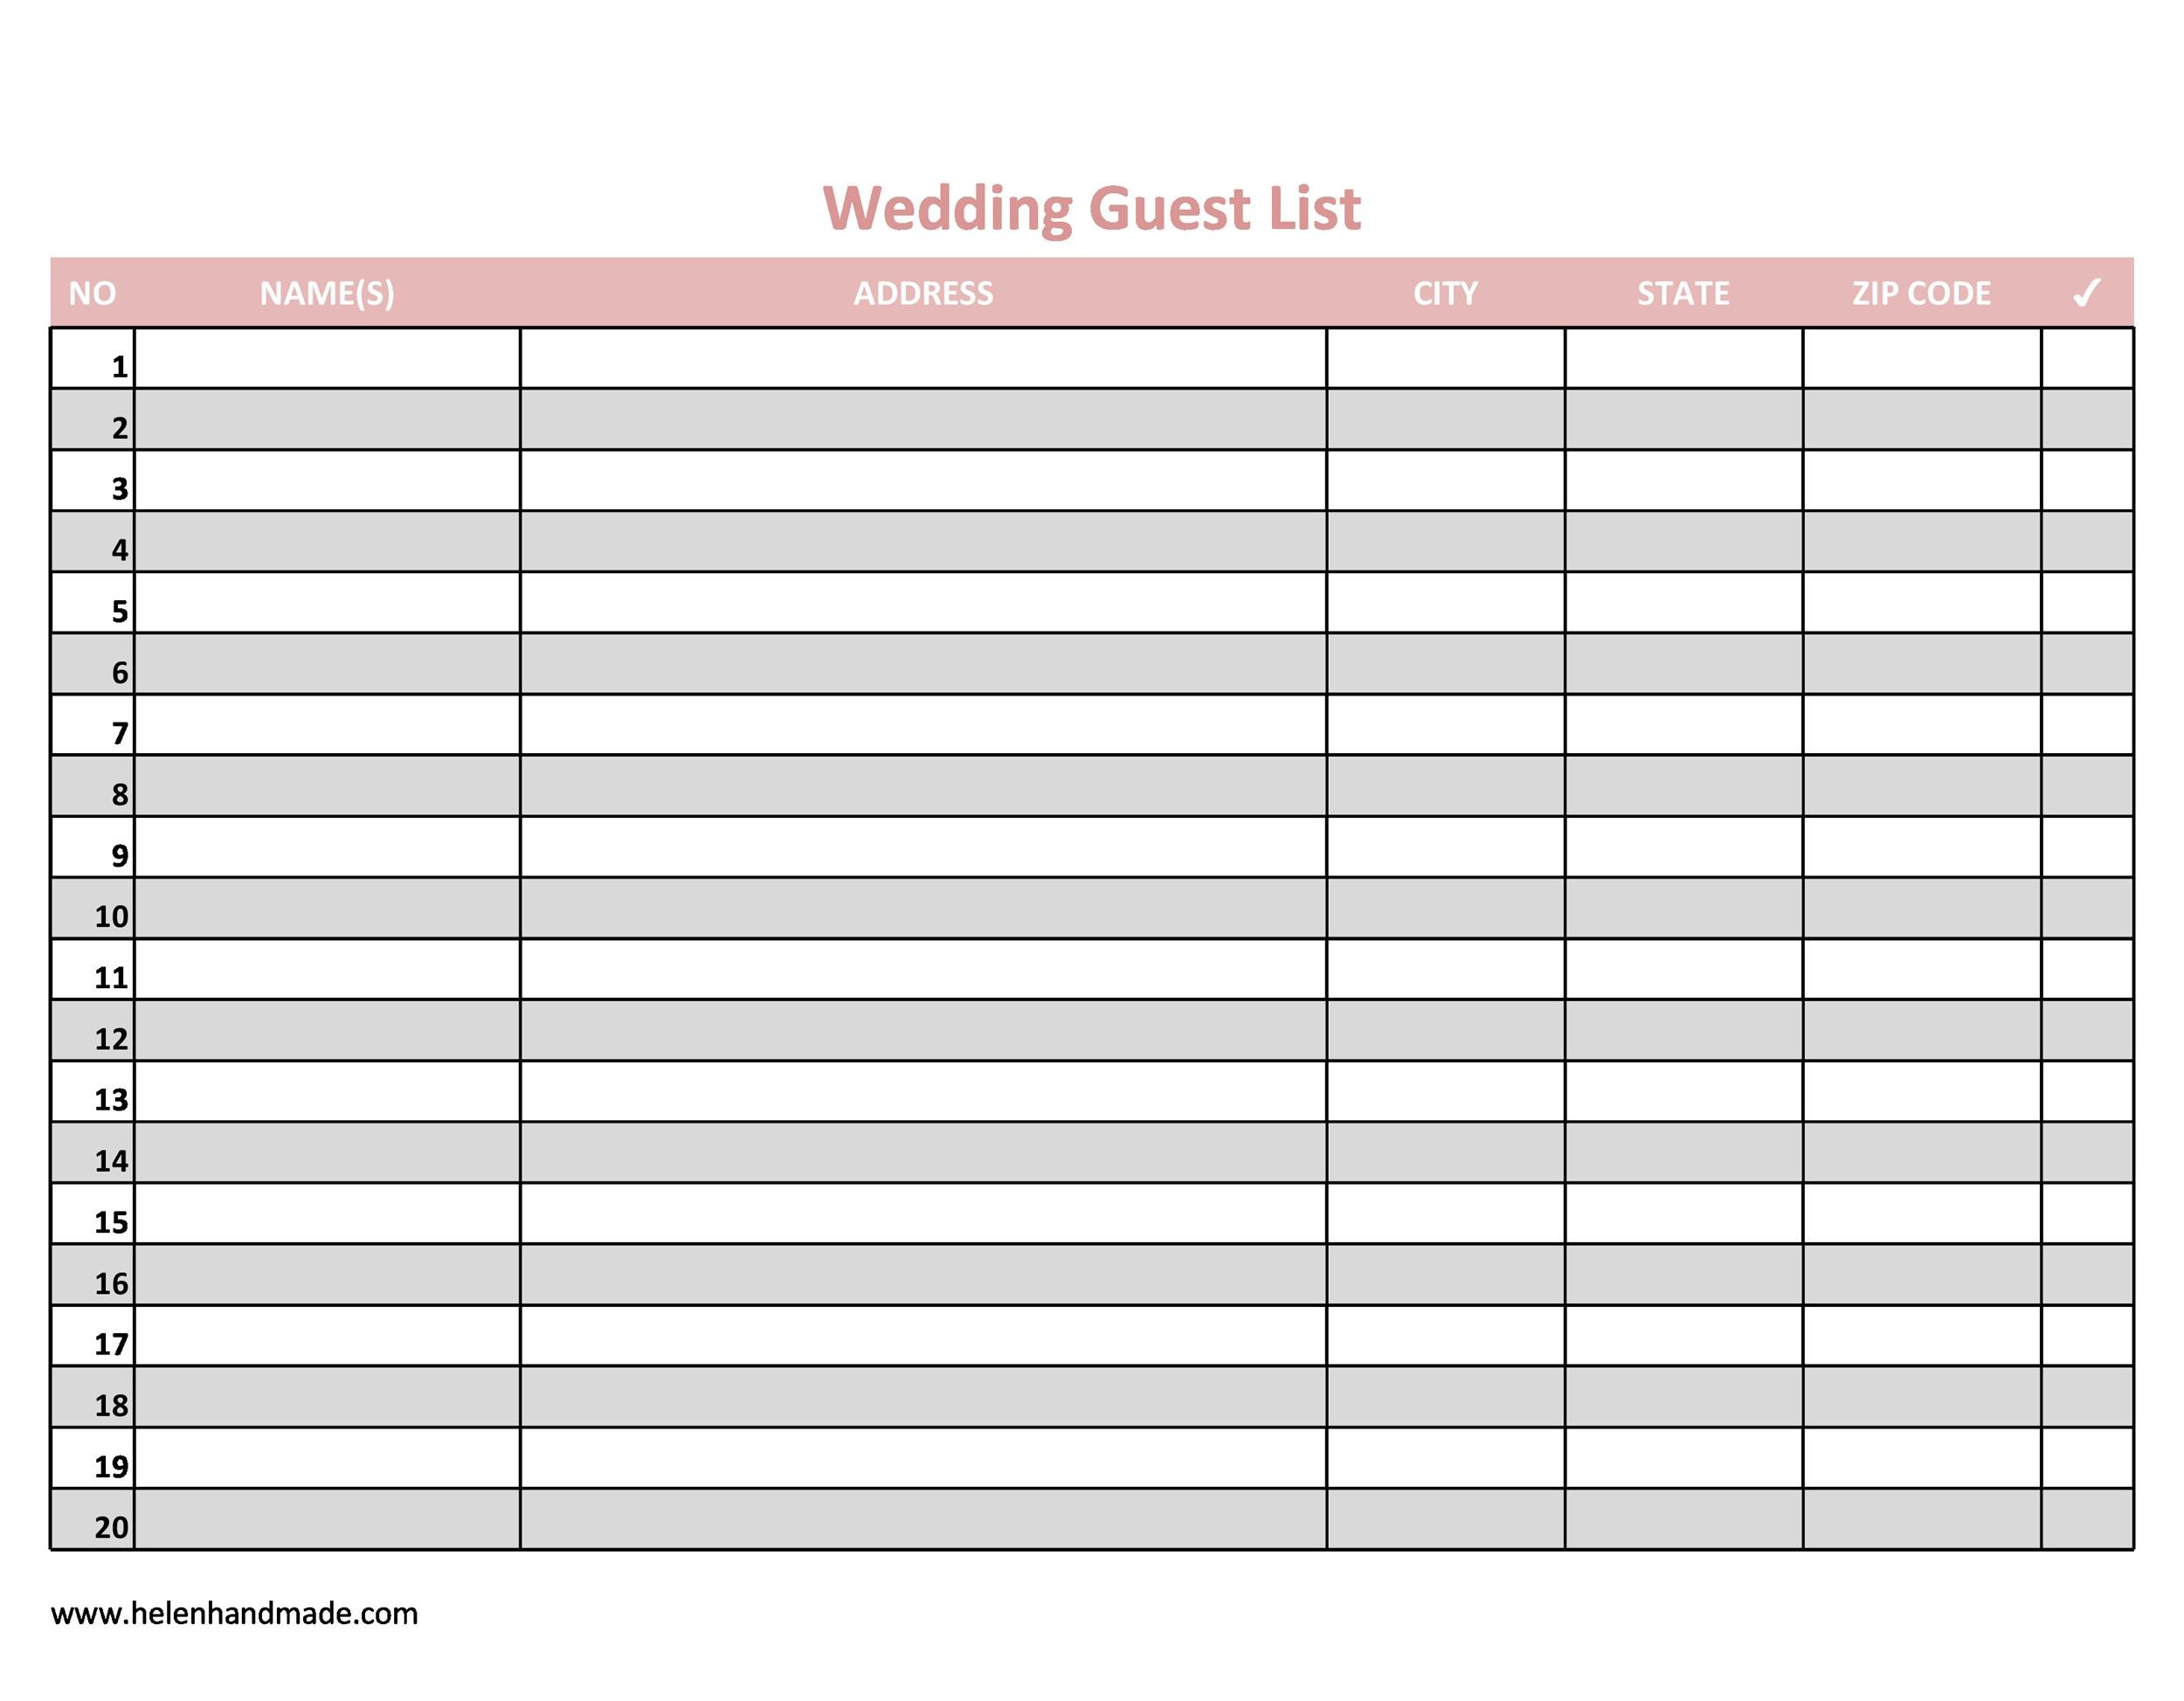 wedding guest list print out - Romeo.landinez.co